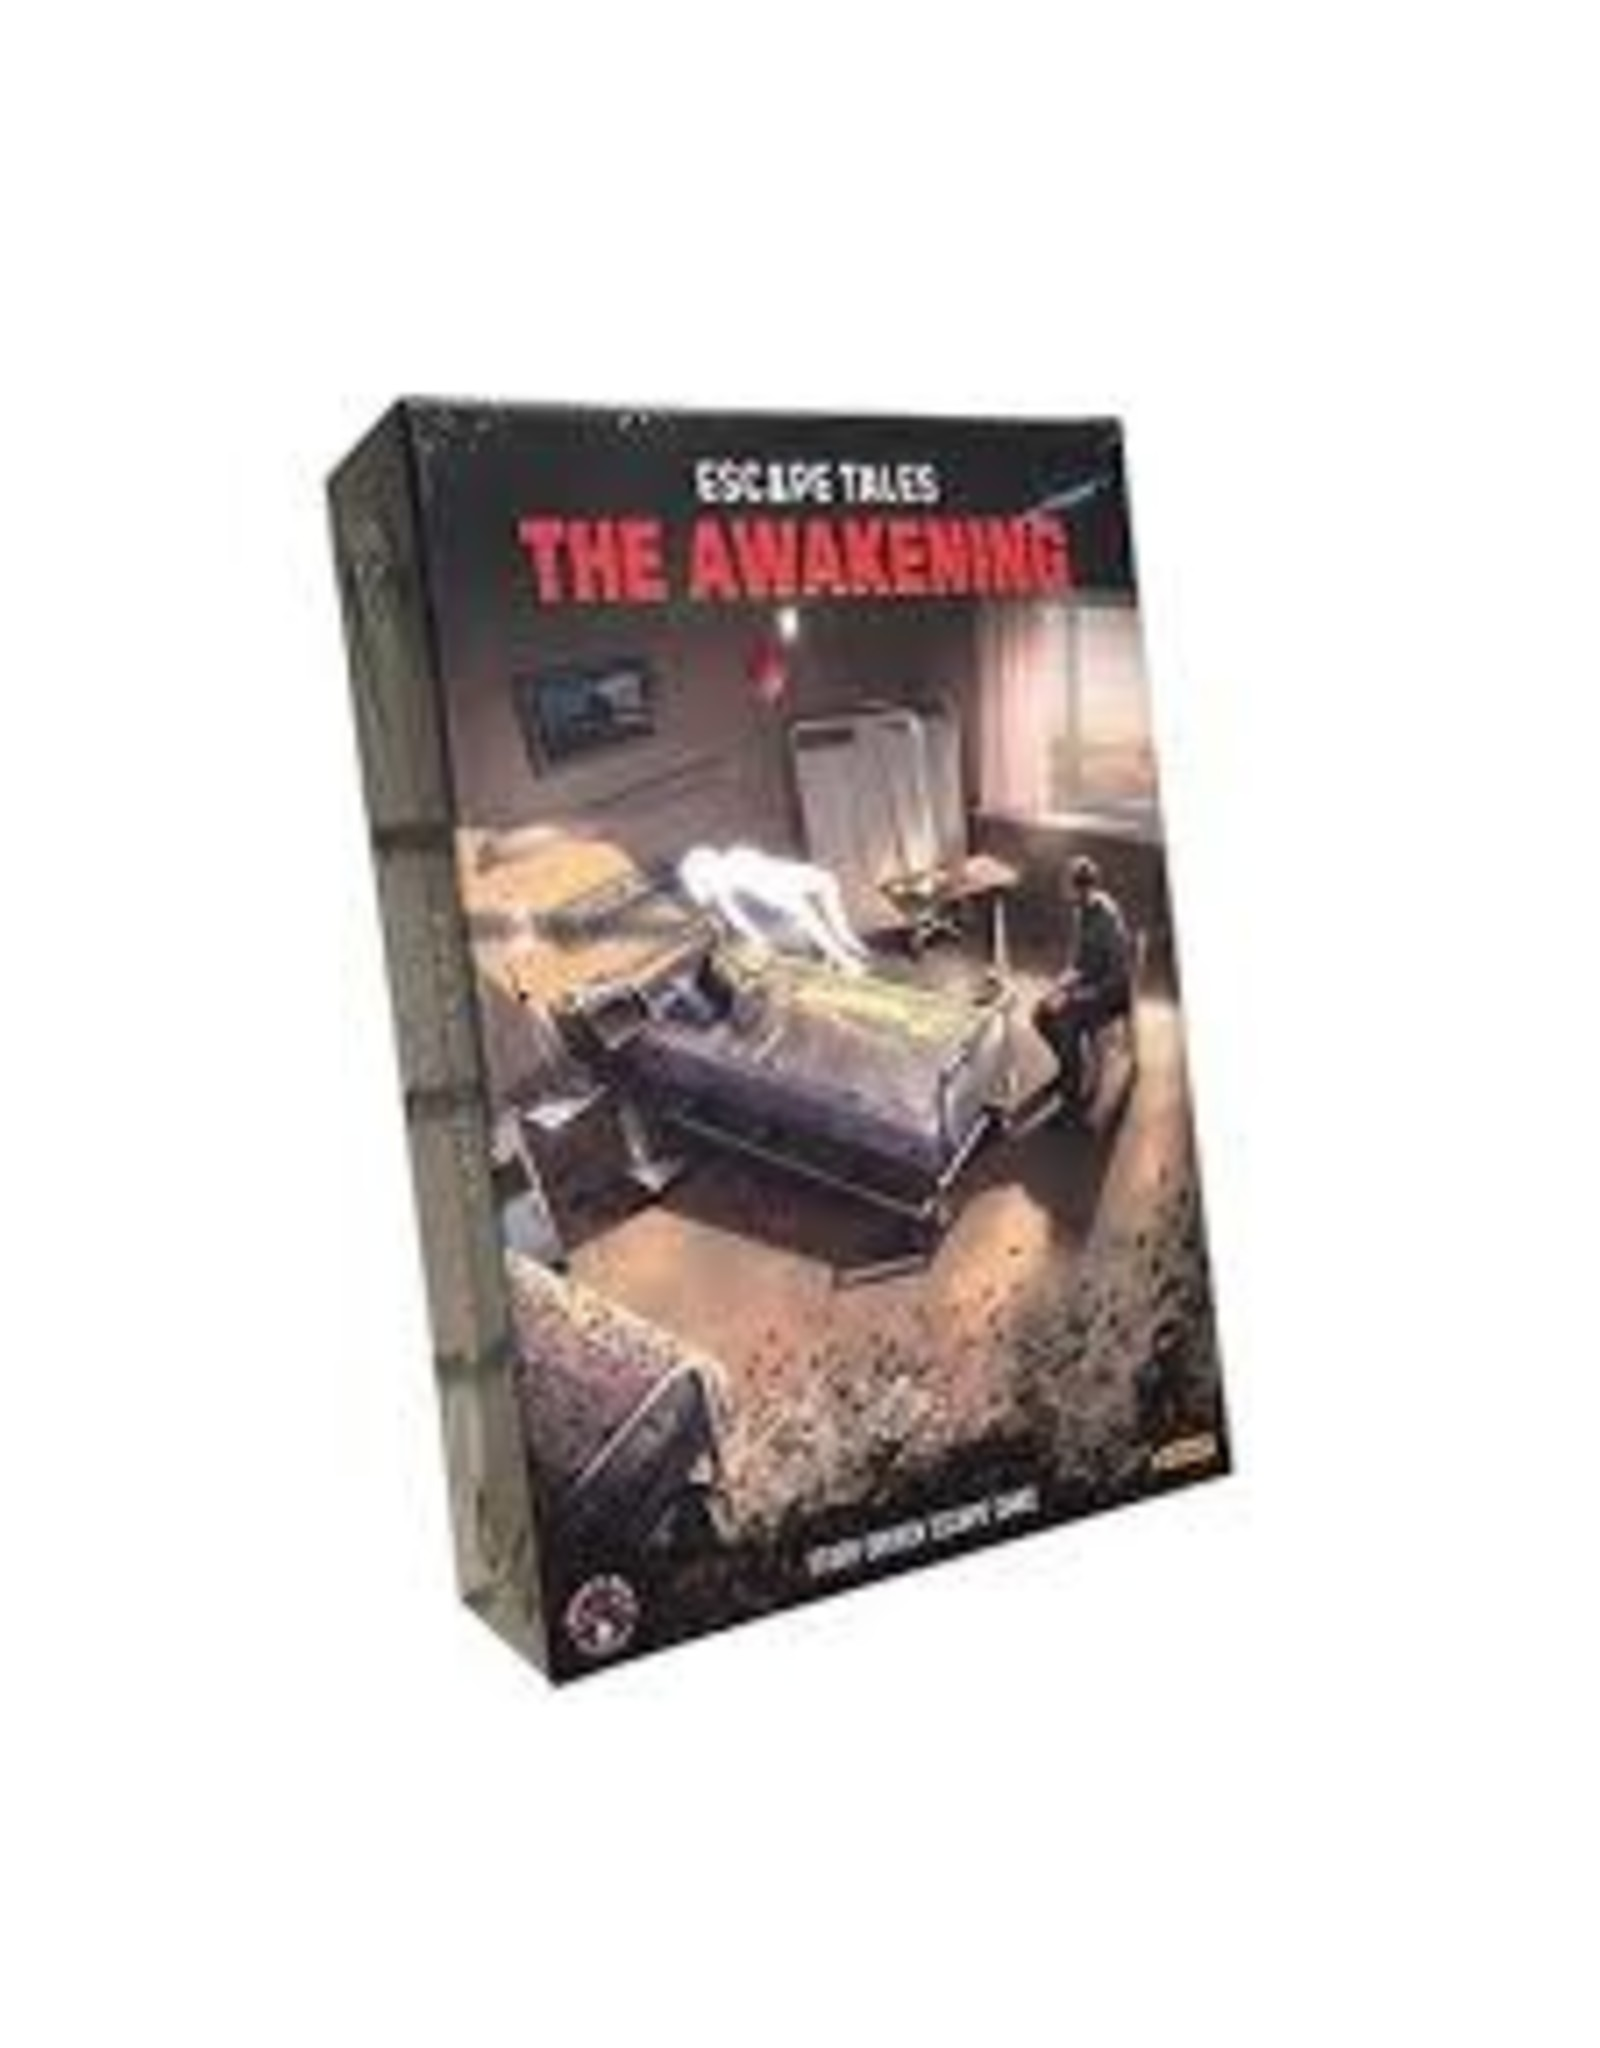 Divers ESCAPE TALES: THE AWAKENING (English)